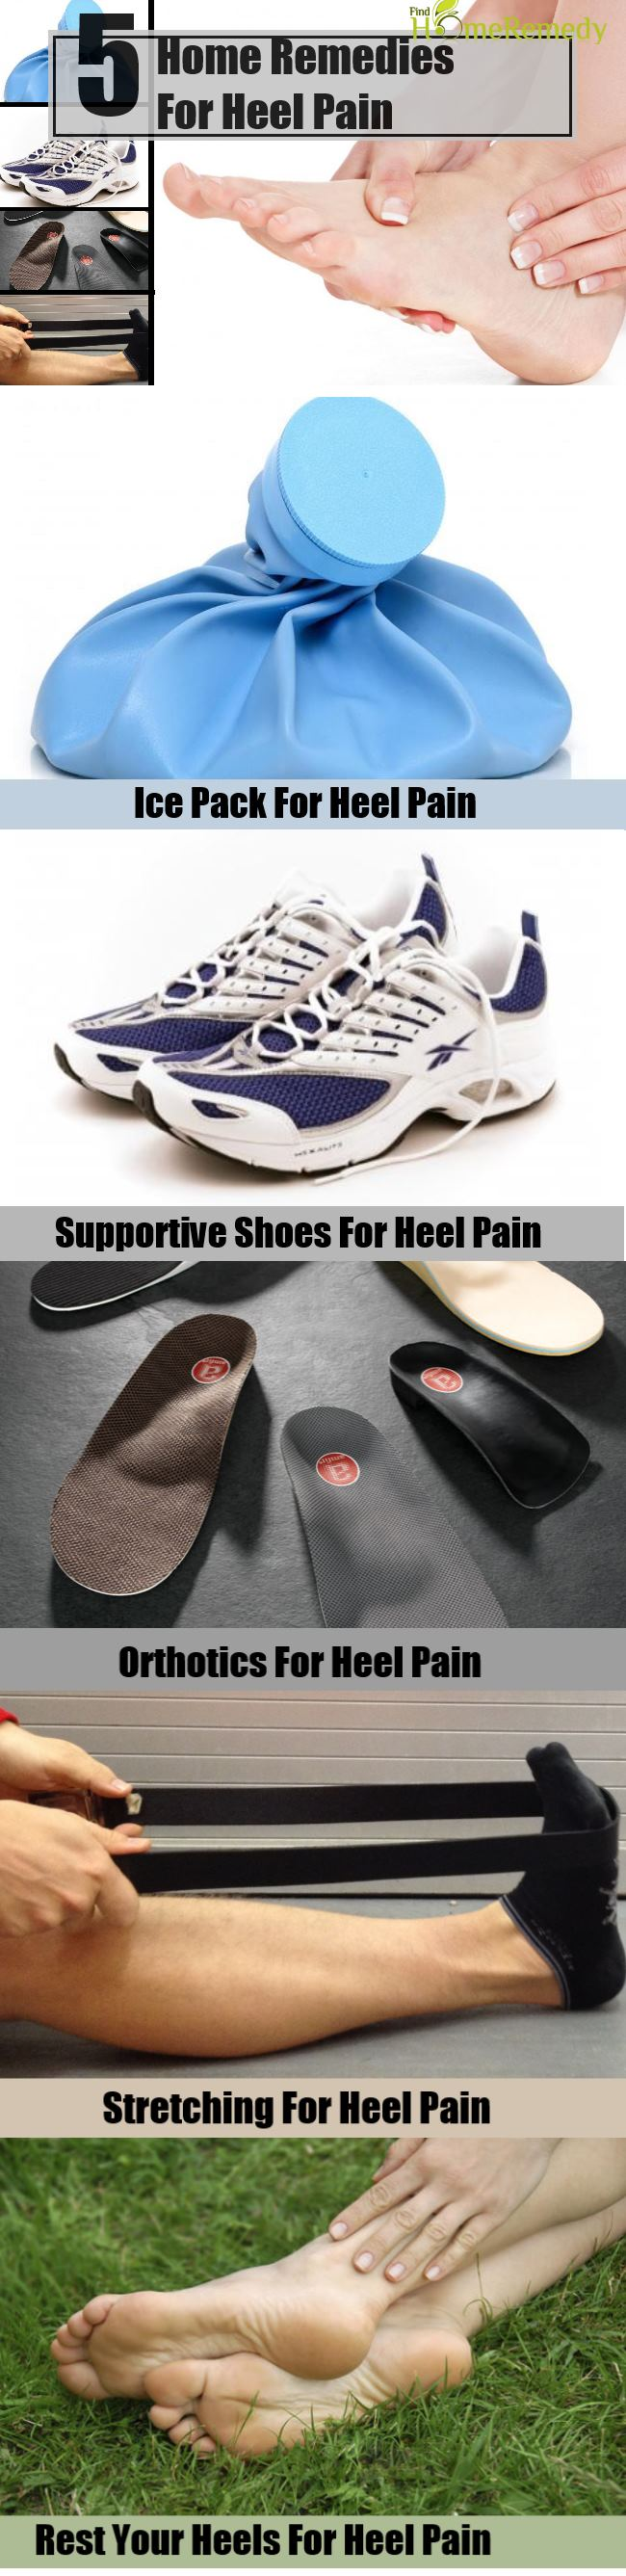 5 Home Remedies For Heel Pain